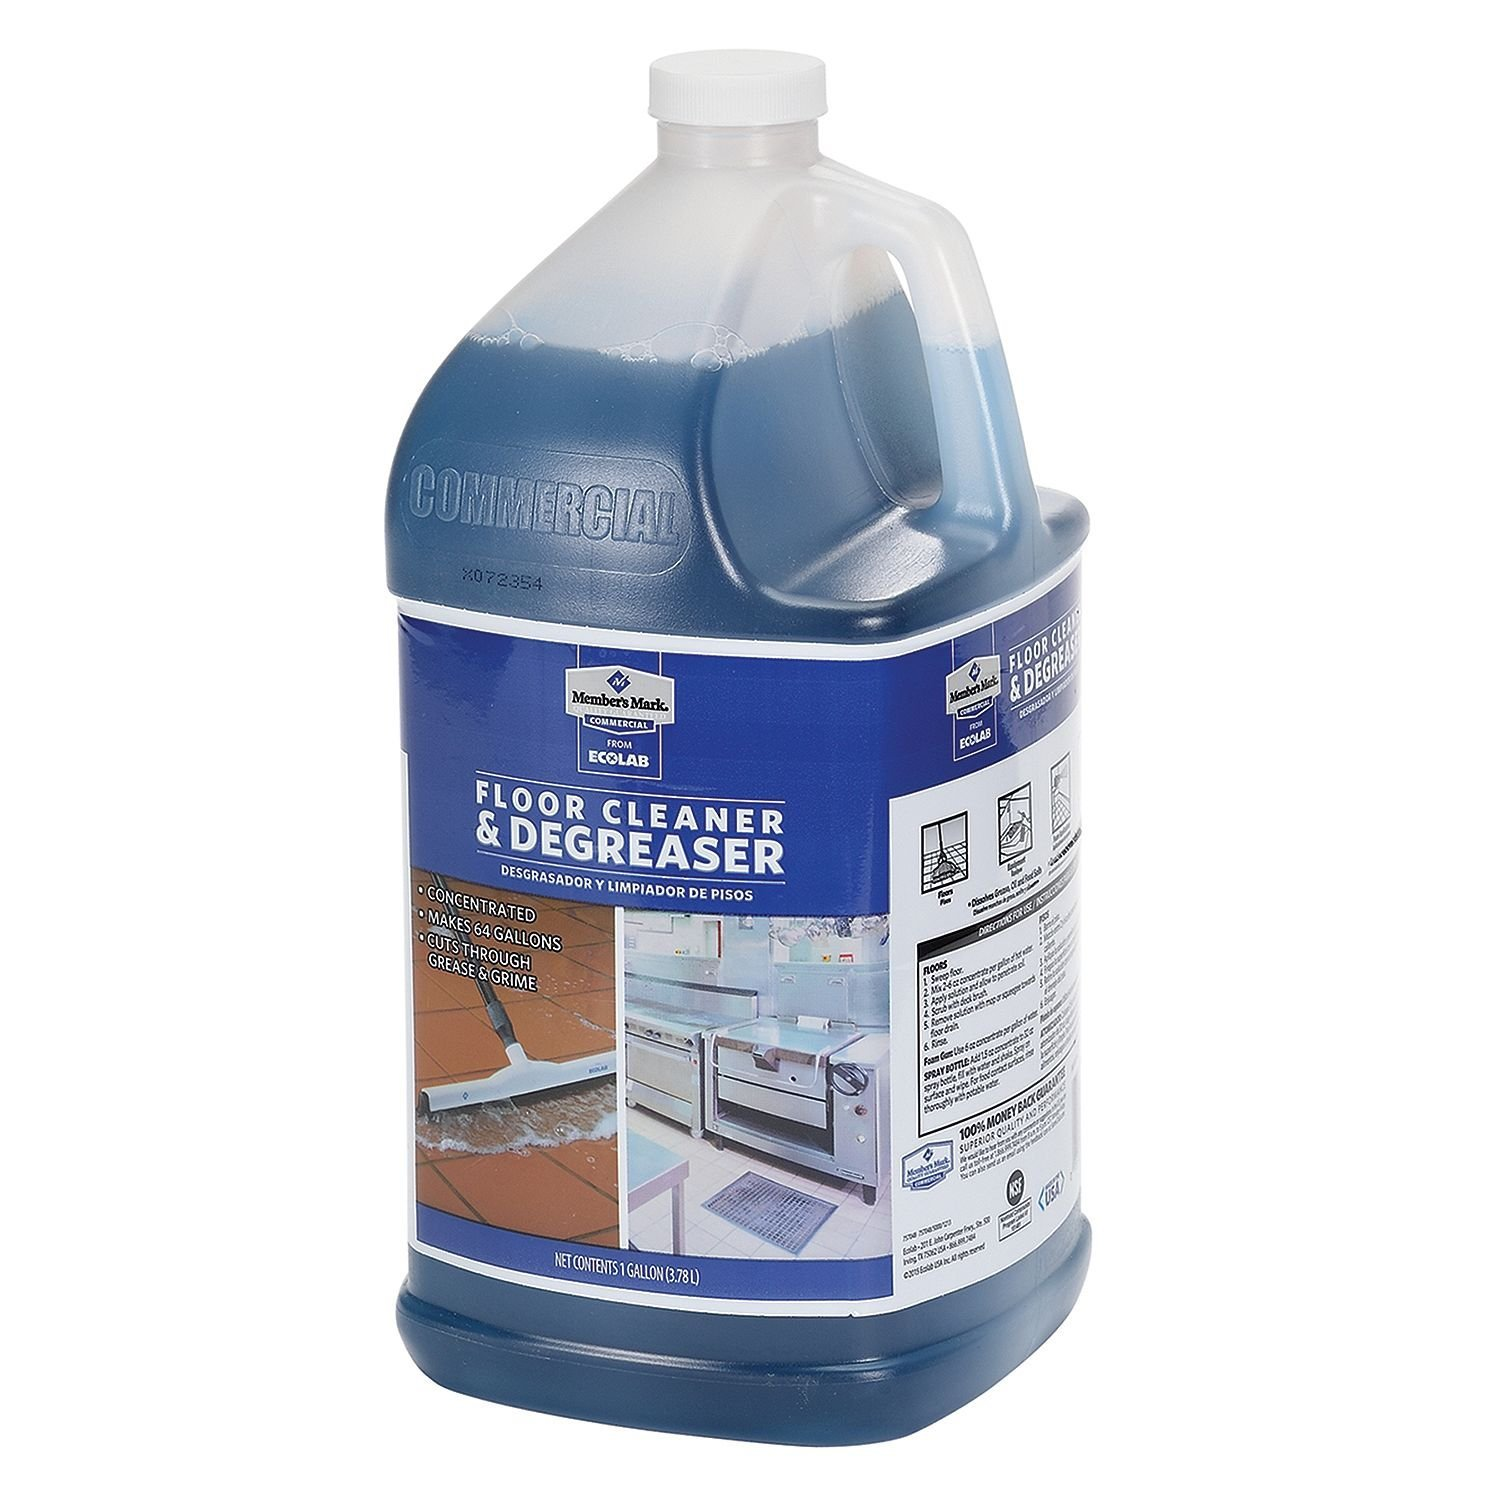 Cheap Ecolab Degreaser Msds, Find Ecolab Degreaser Msds